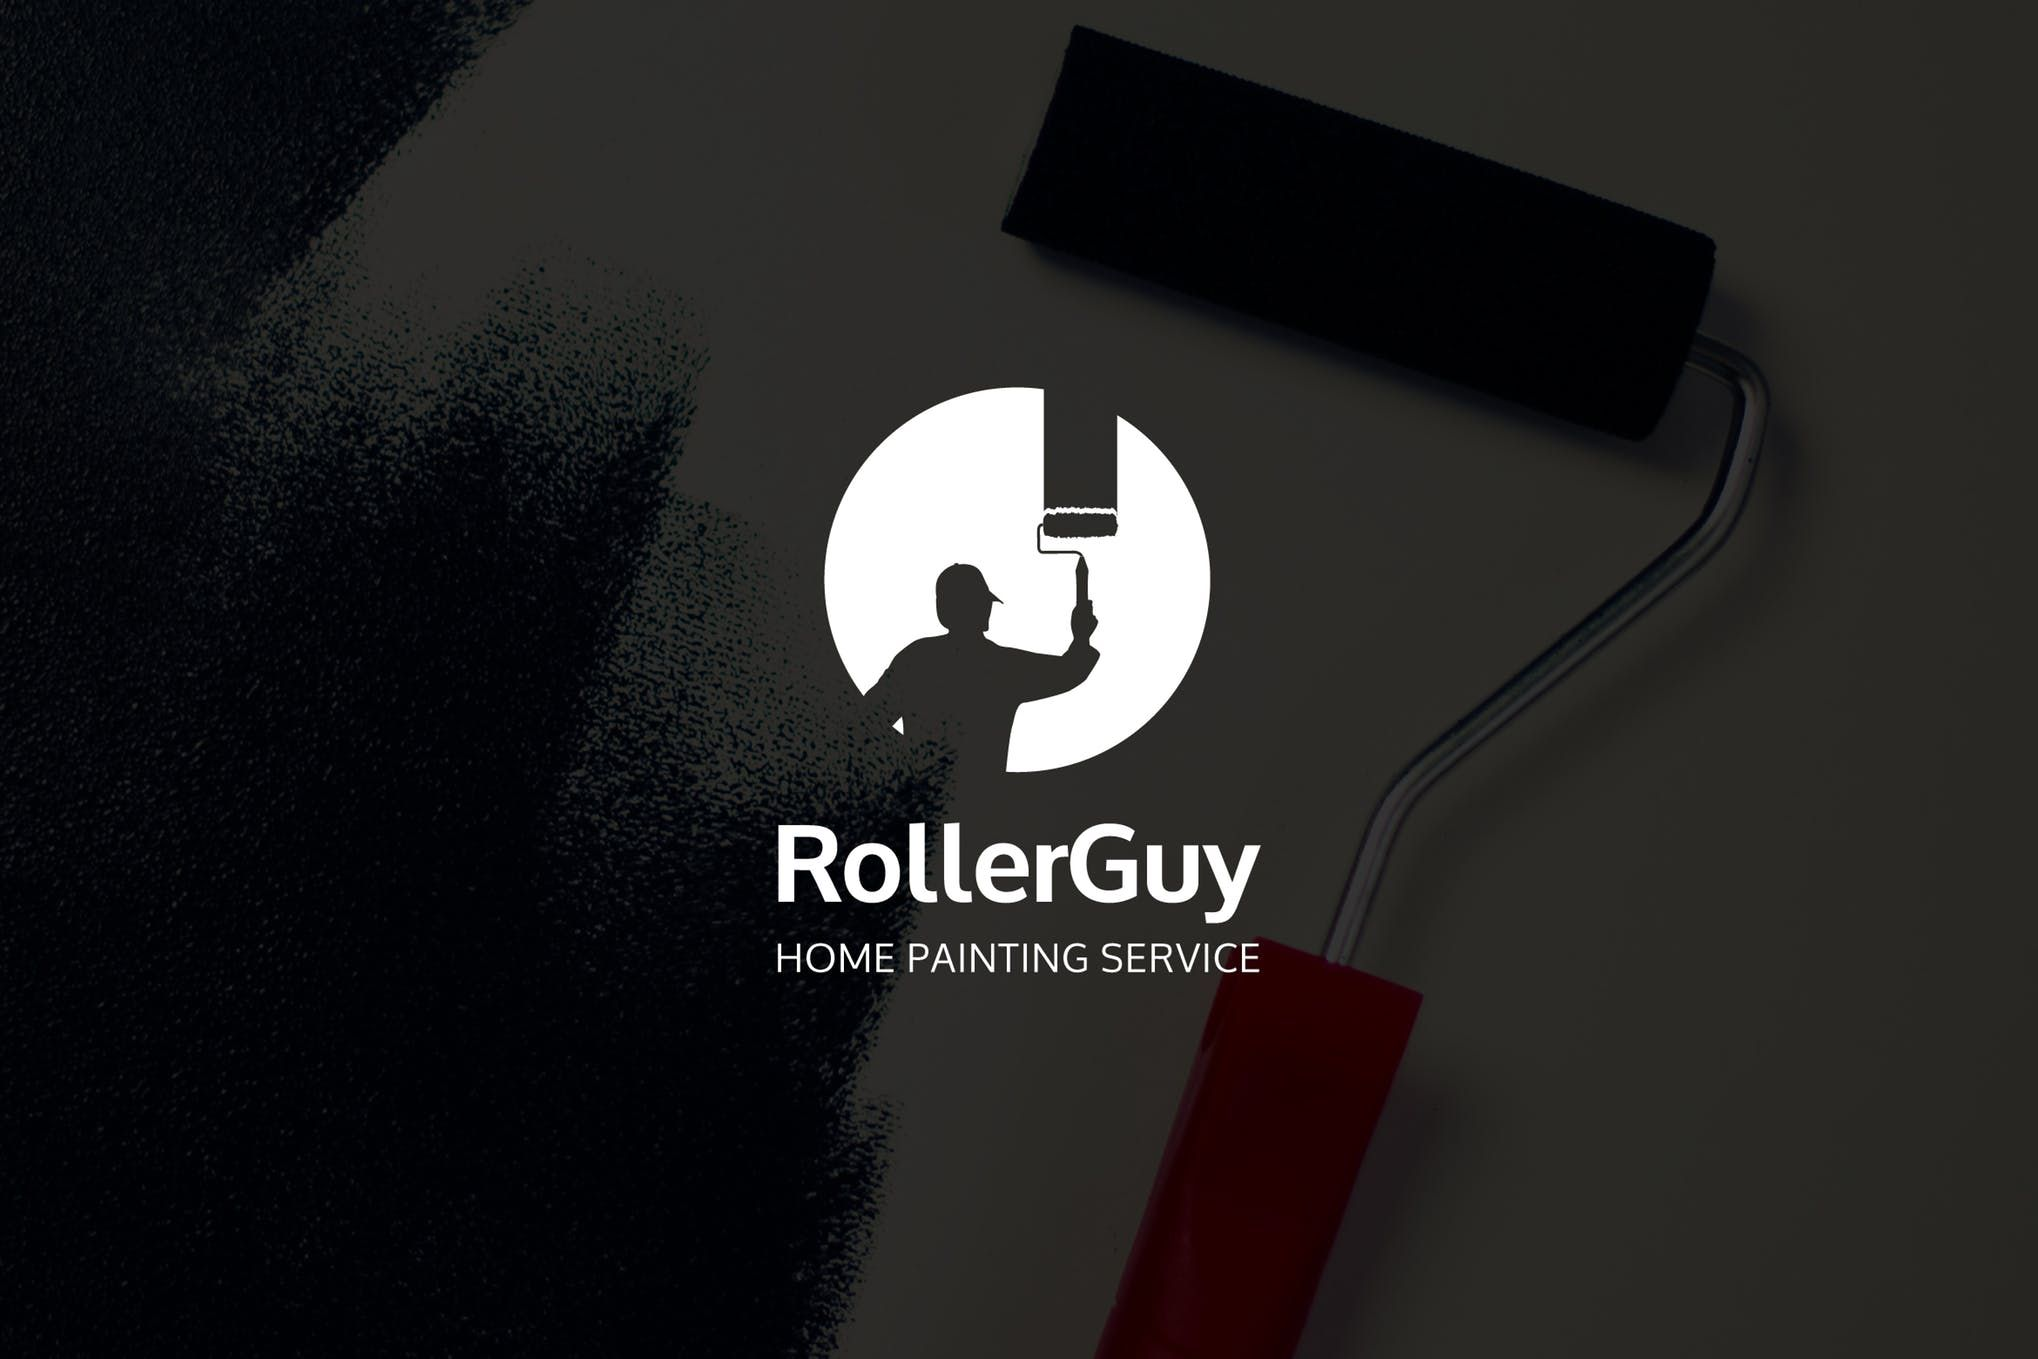 RollerGuy Negative Space Paint Service Logo by punkl on